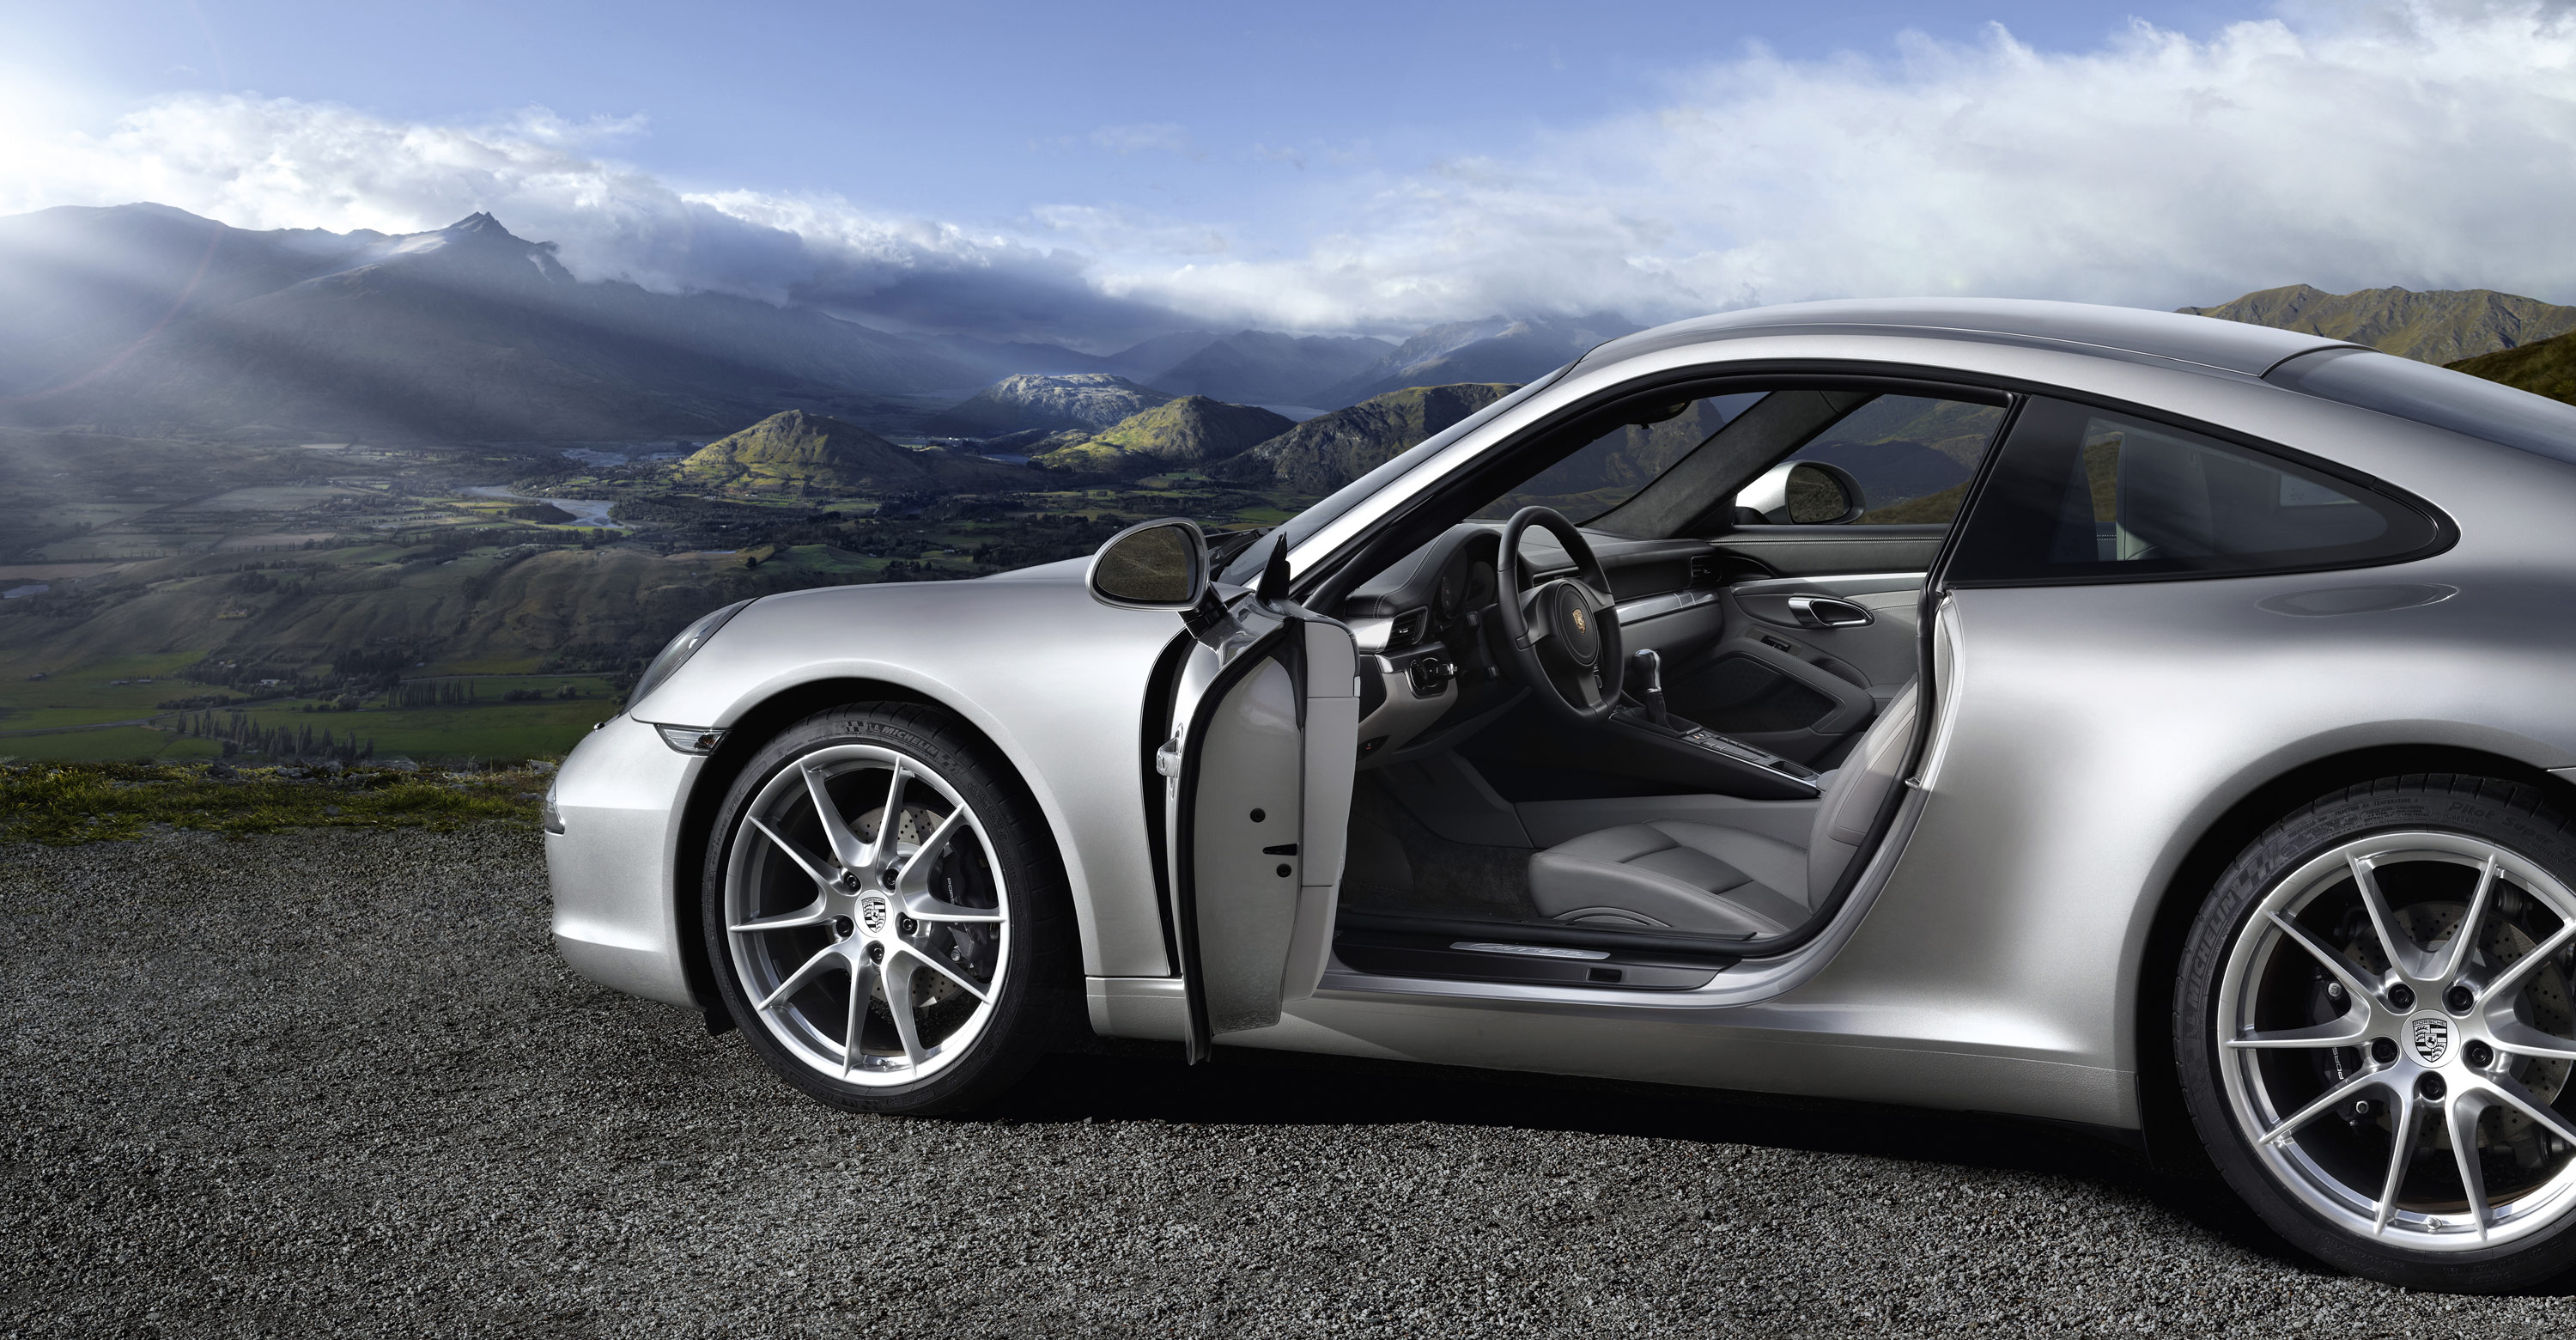 Le Meilleur The Official Car Photo Of The Day For Pics You Have Not Ce Mois Ci